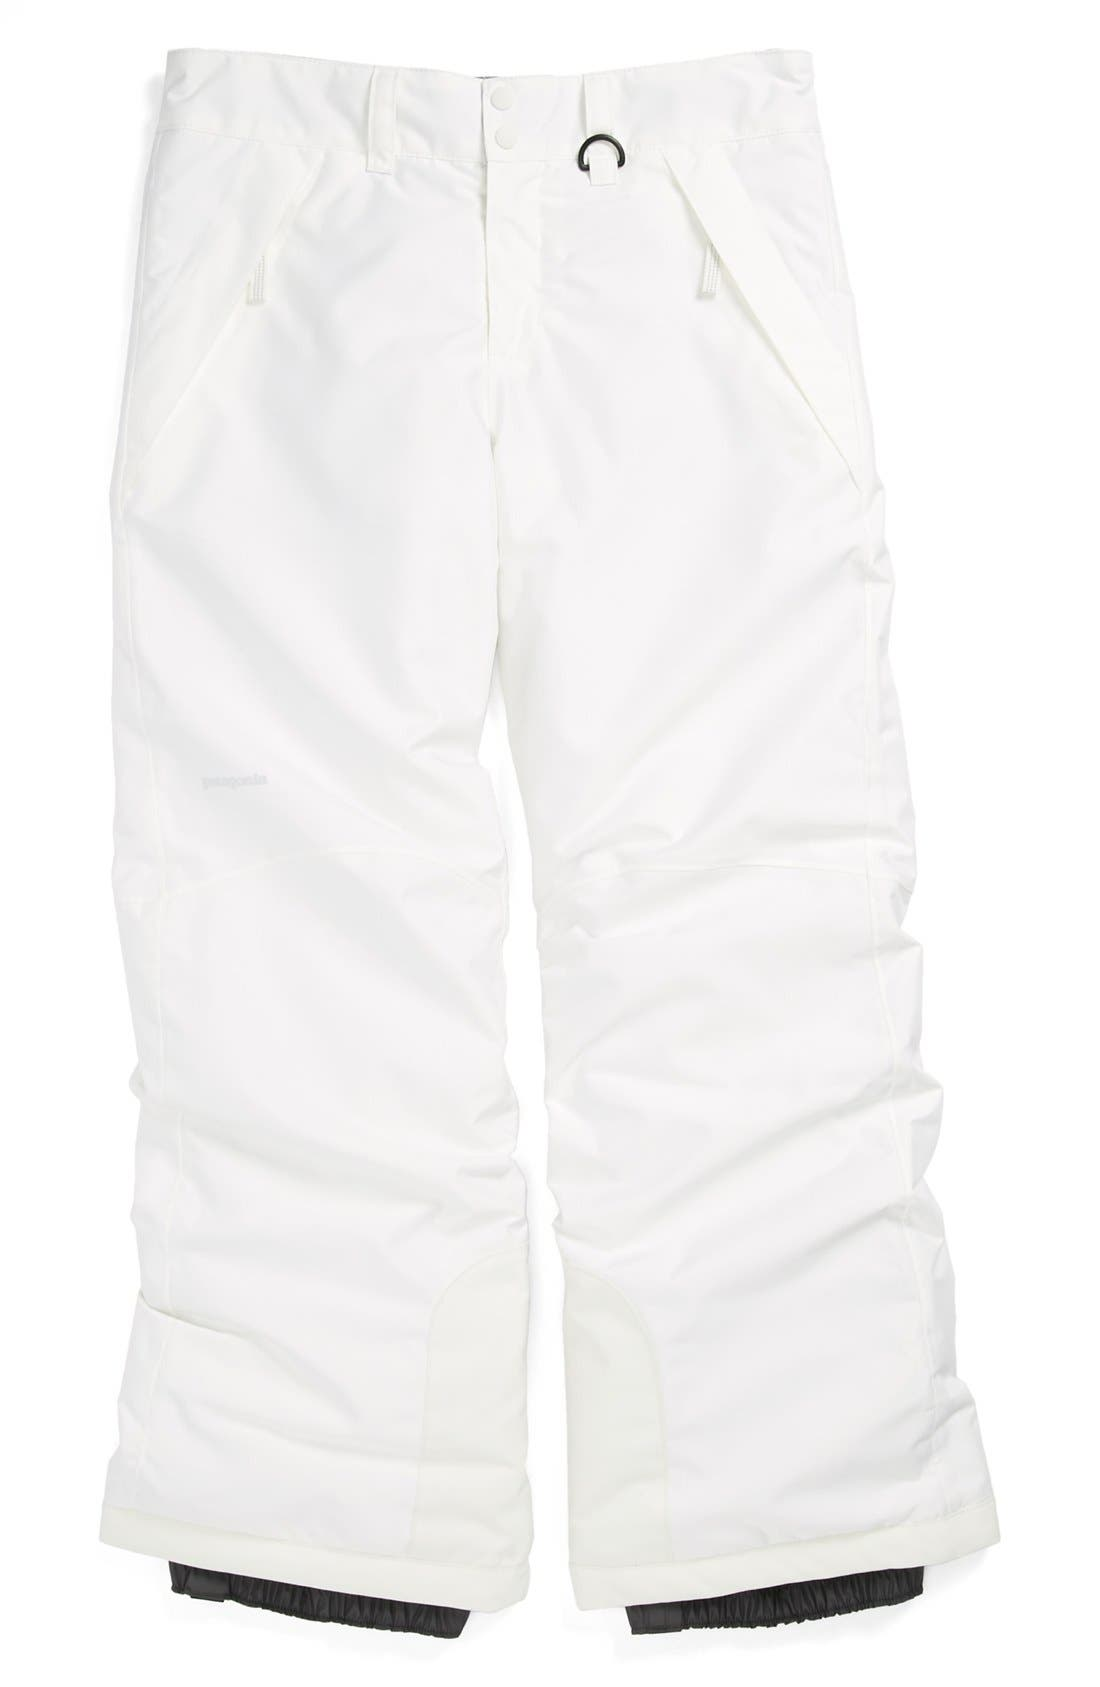 Alternate Image 1 Selected - Patagonia 'Snowbelle' Insulated Pants (Little Girls & Big Girls)